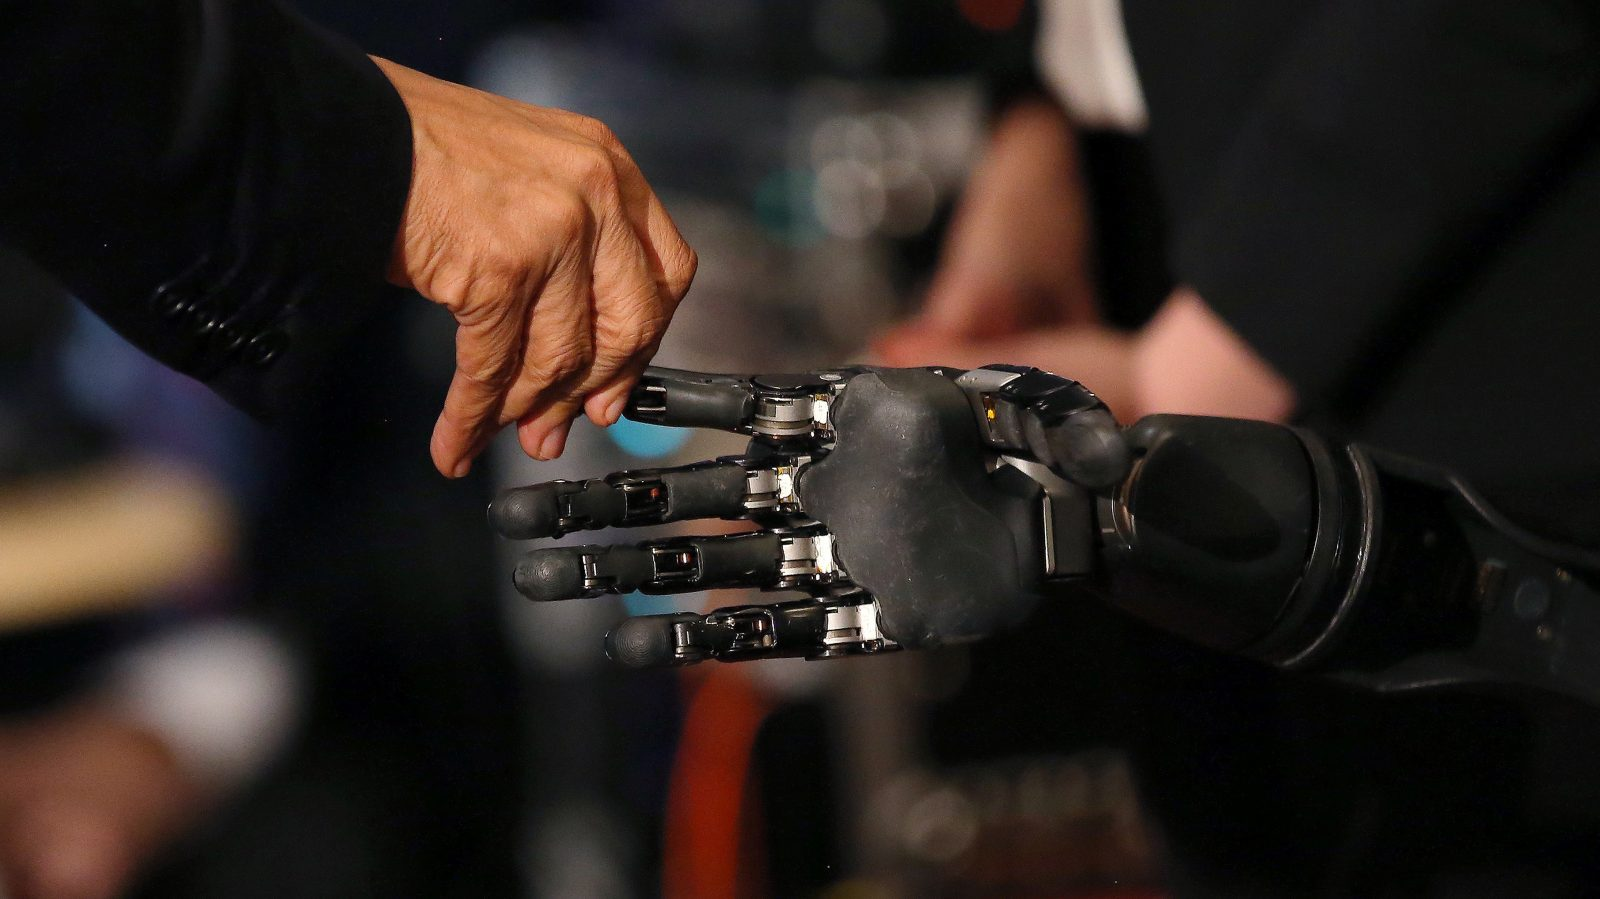 A robot and human hand touch.